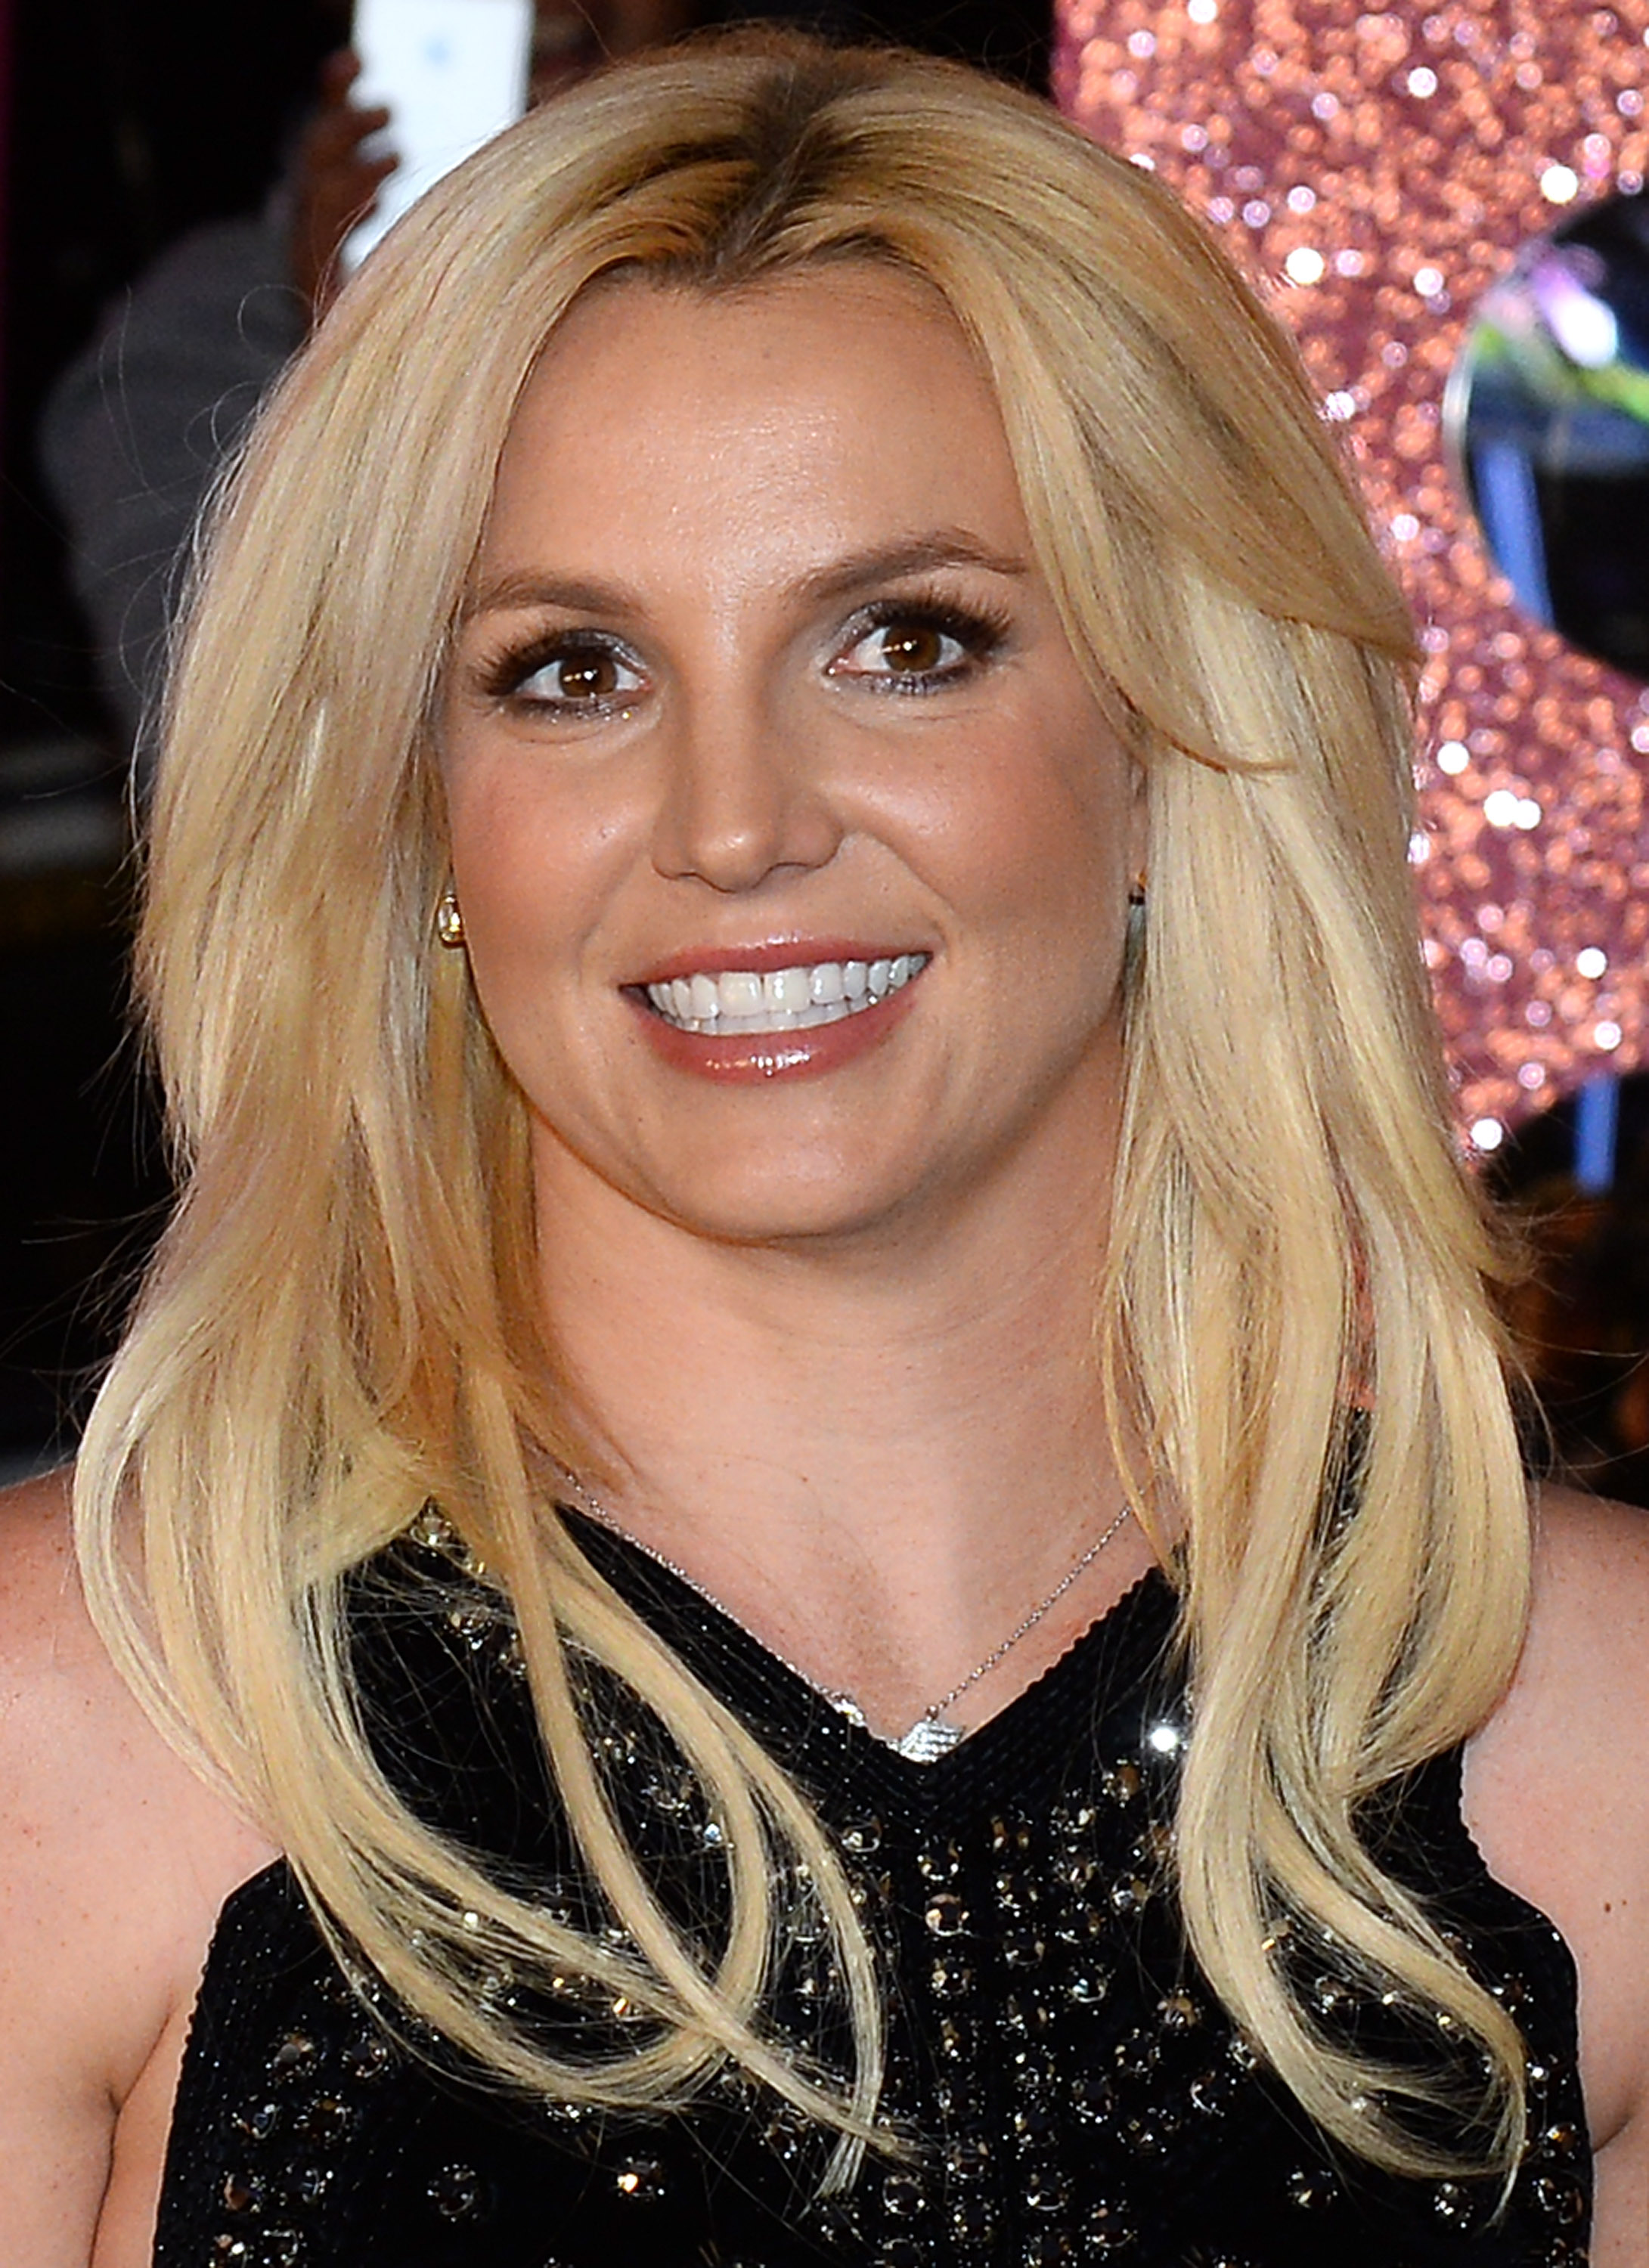 Spears Britney new blonde hair color pictures foto